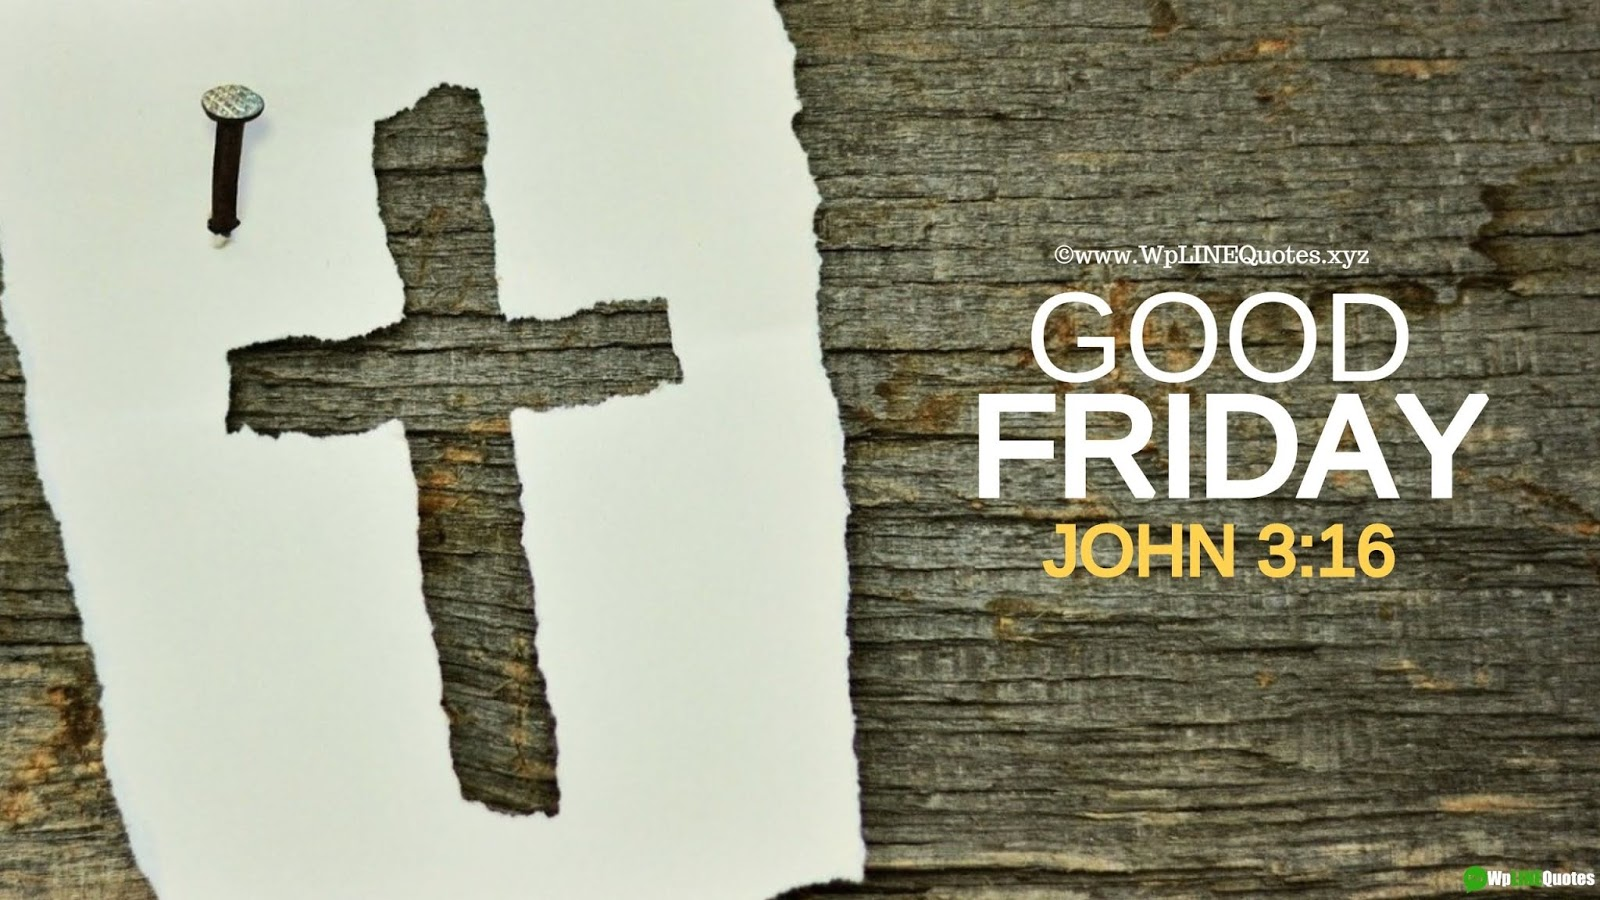 Good Friday Wishes, Quotes, Greetings, Message, Status, History, Facts, Meaning, Images, Poster, Wallpaper